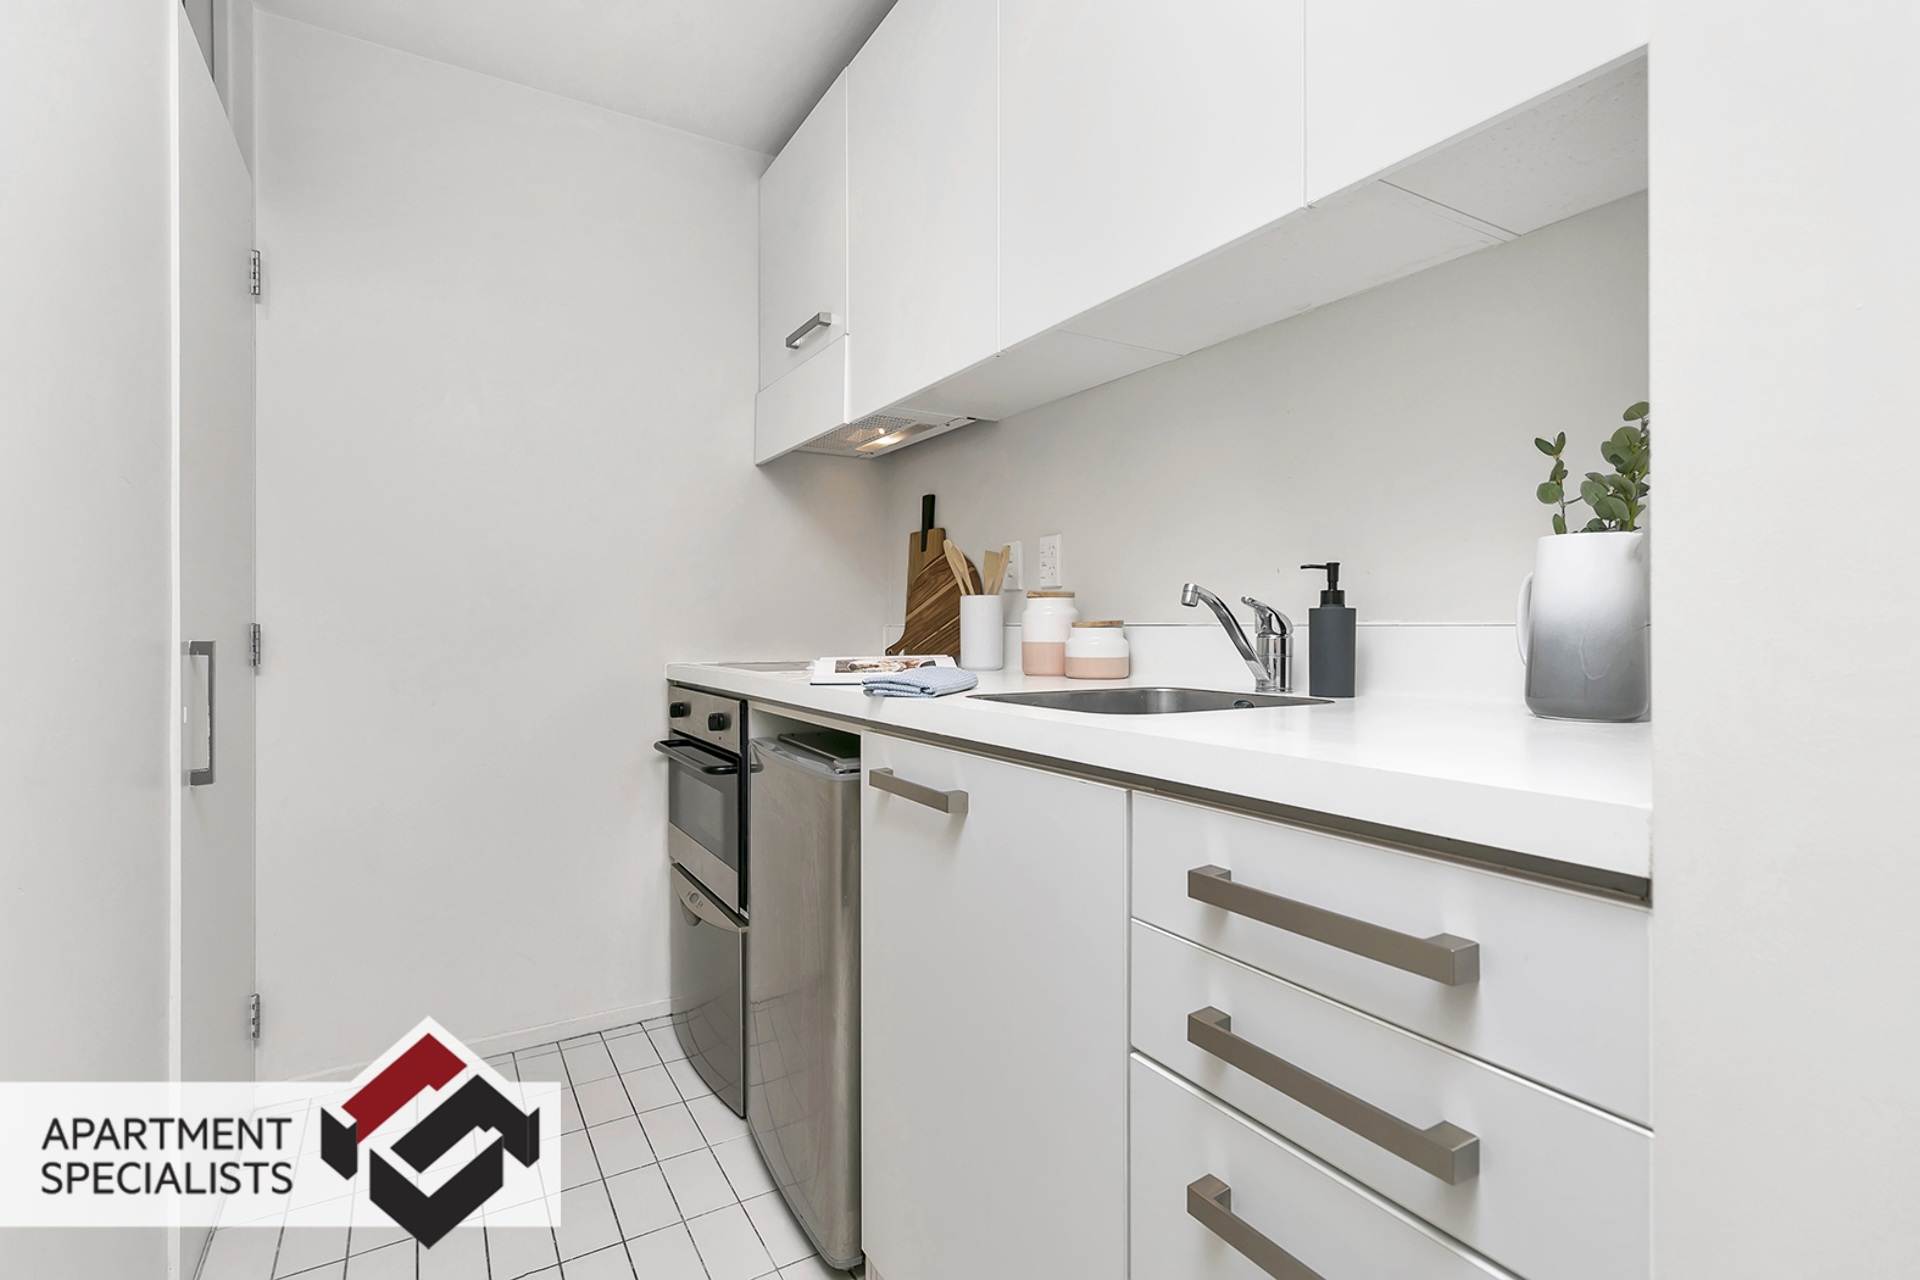 2 | 10 Waterloo Quadrant, City Centre | Apartment Specialists